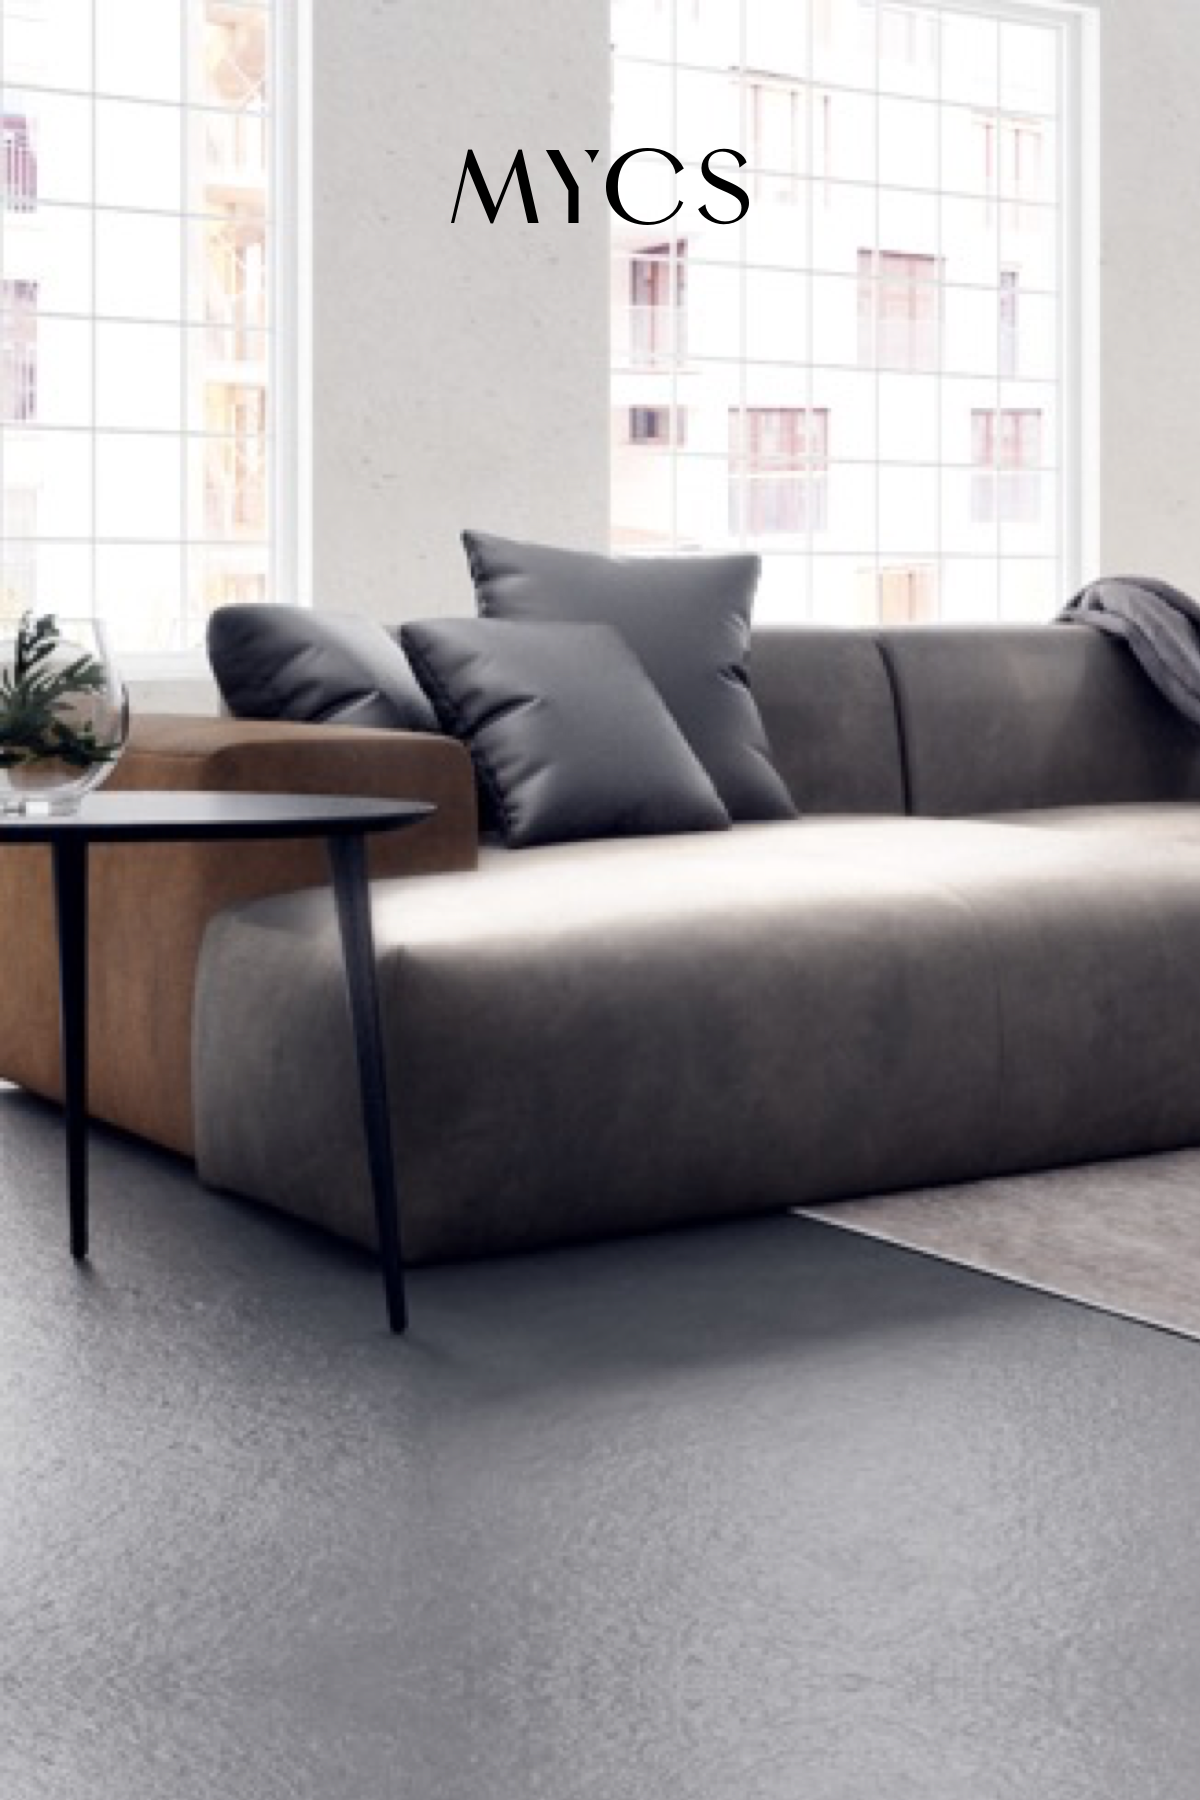 Your cosy leather sofa with MYCS in 2020   Ledersofa, Sofa ...